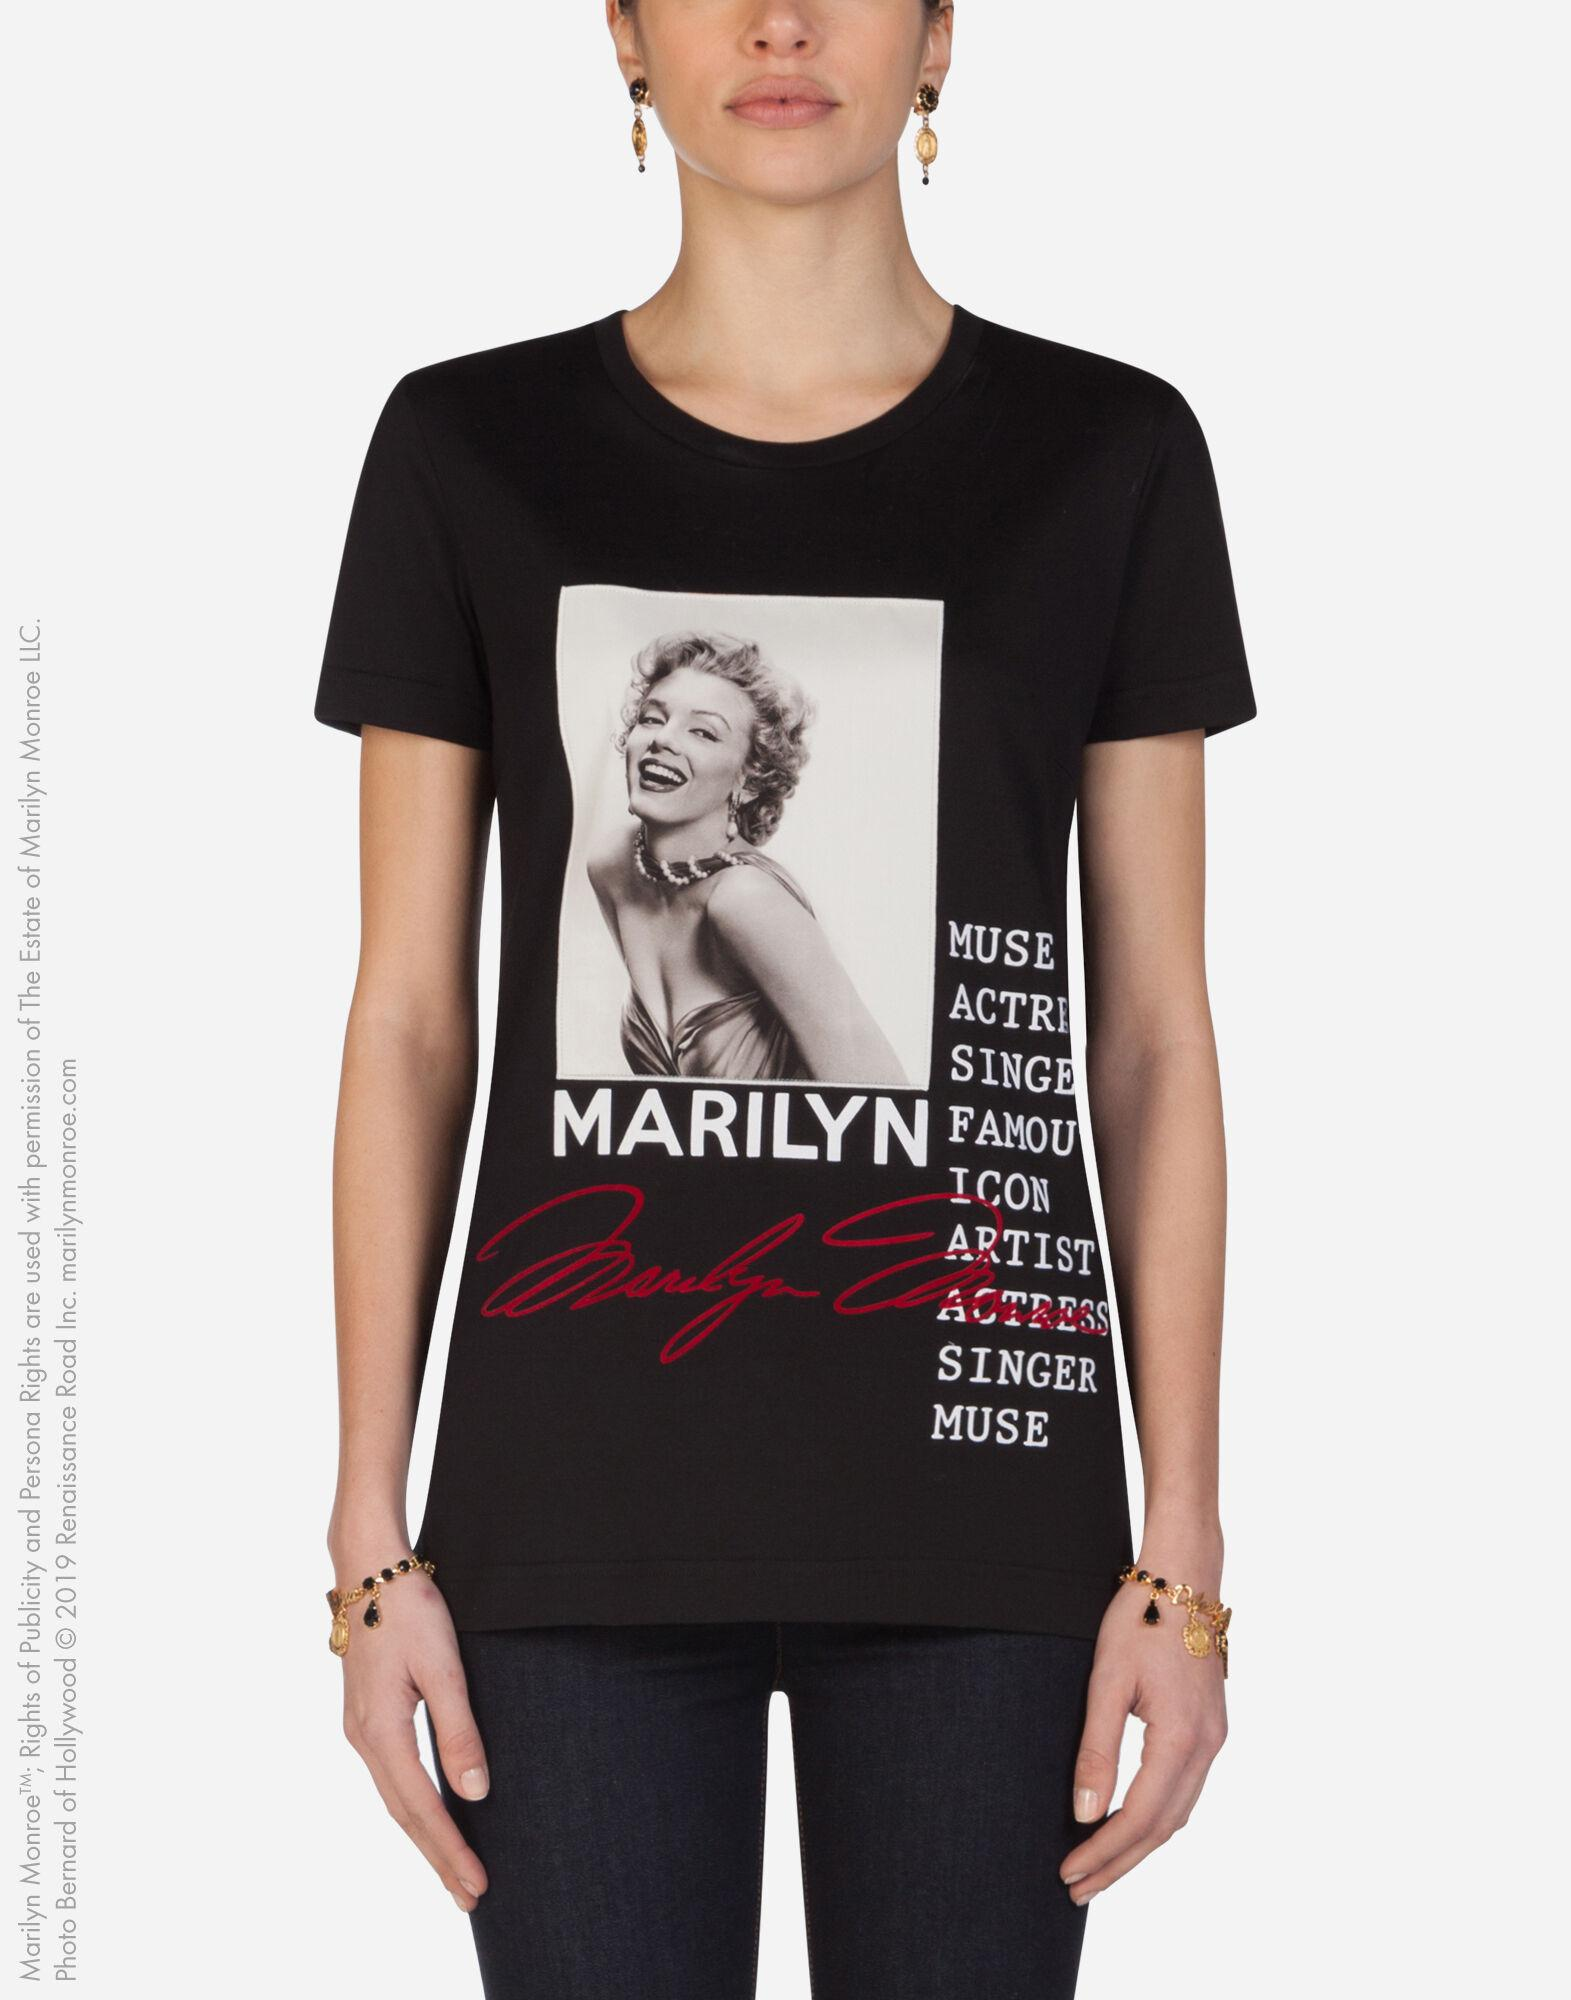 Jersey t-shirt with marilyn monroe print and embroidery